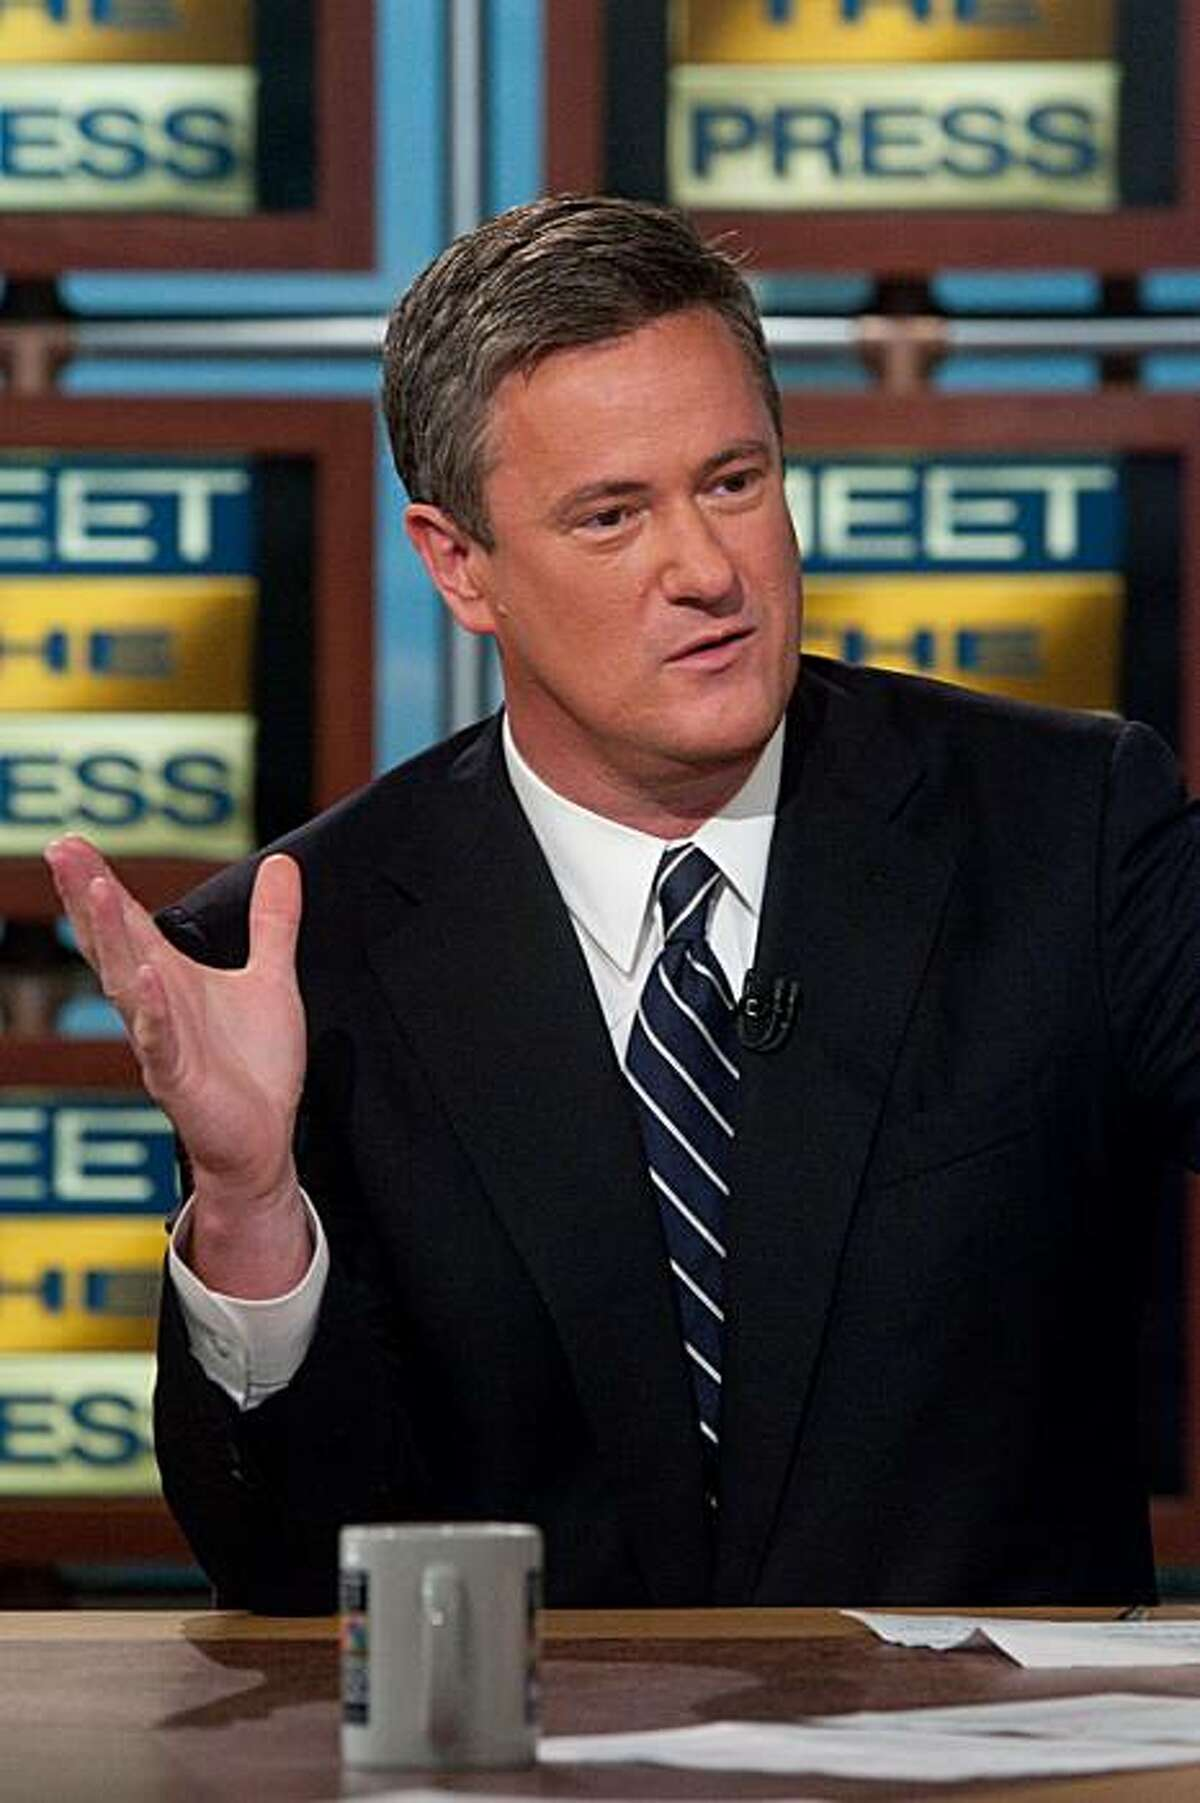 """FILE - In this April 3, 2009 file photo originally released by NBC, Joe Scarborough, host of MSNBC's """"Morning Joe"""" right discusses the future of the Republican party on NBC's """"Meet the Press"""" in Washington. MSNBC says it's suspending morning host Joe Scarborough for two days without pay for making political contributions.The eight donations, each for $500, violate NBC News policy, MSNBC president Phil Griffin said Friday, Nov. 19, 2010."""